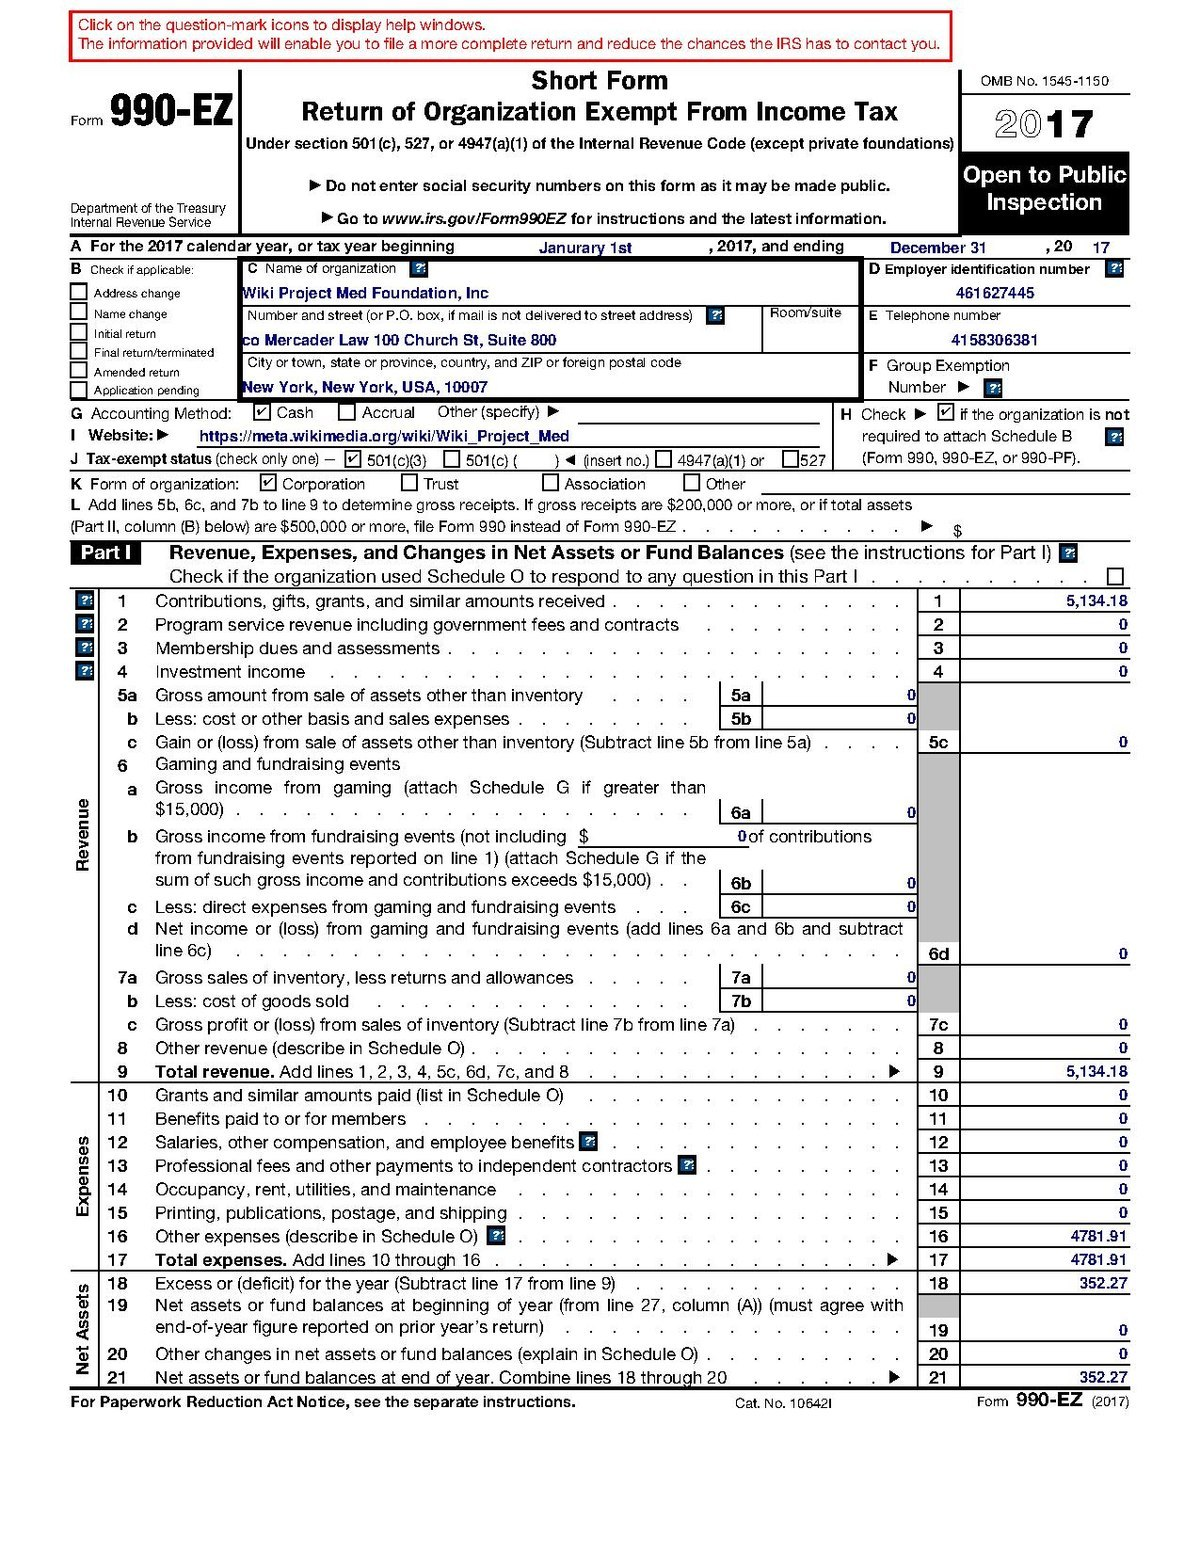 Irs Form 990 Ez Instructions